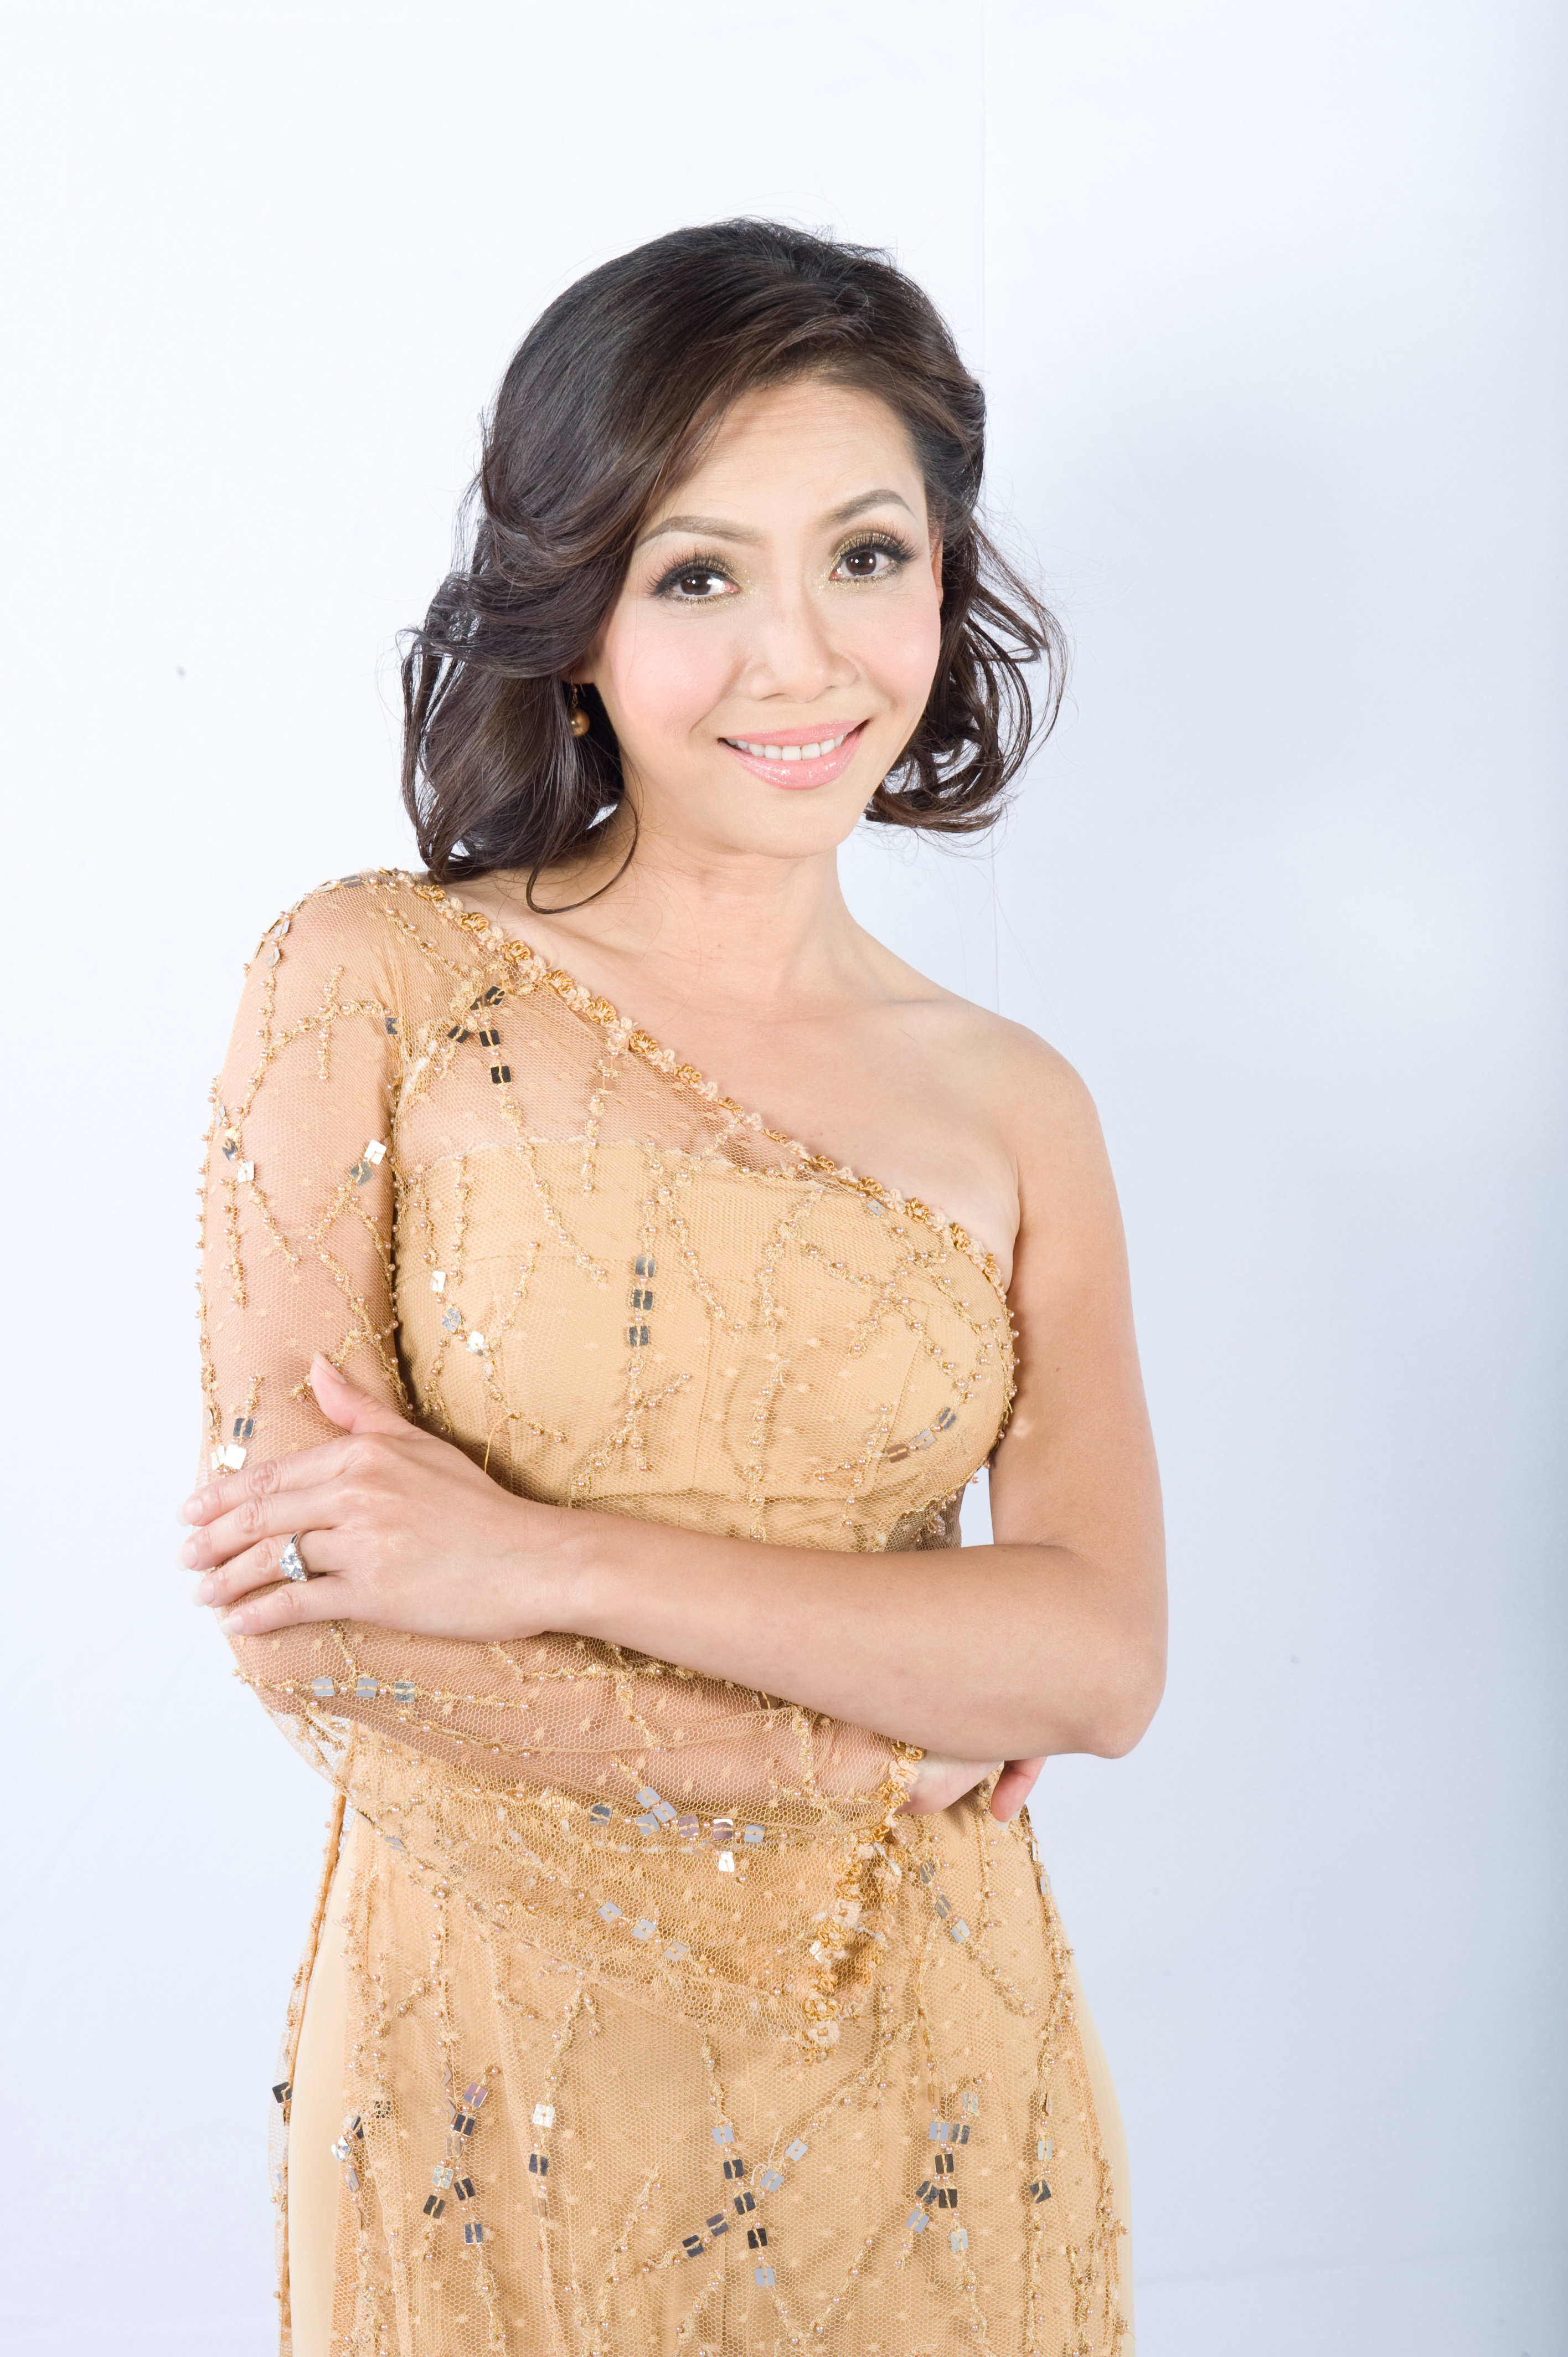 Diep Thanh Thanh, Singer